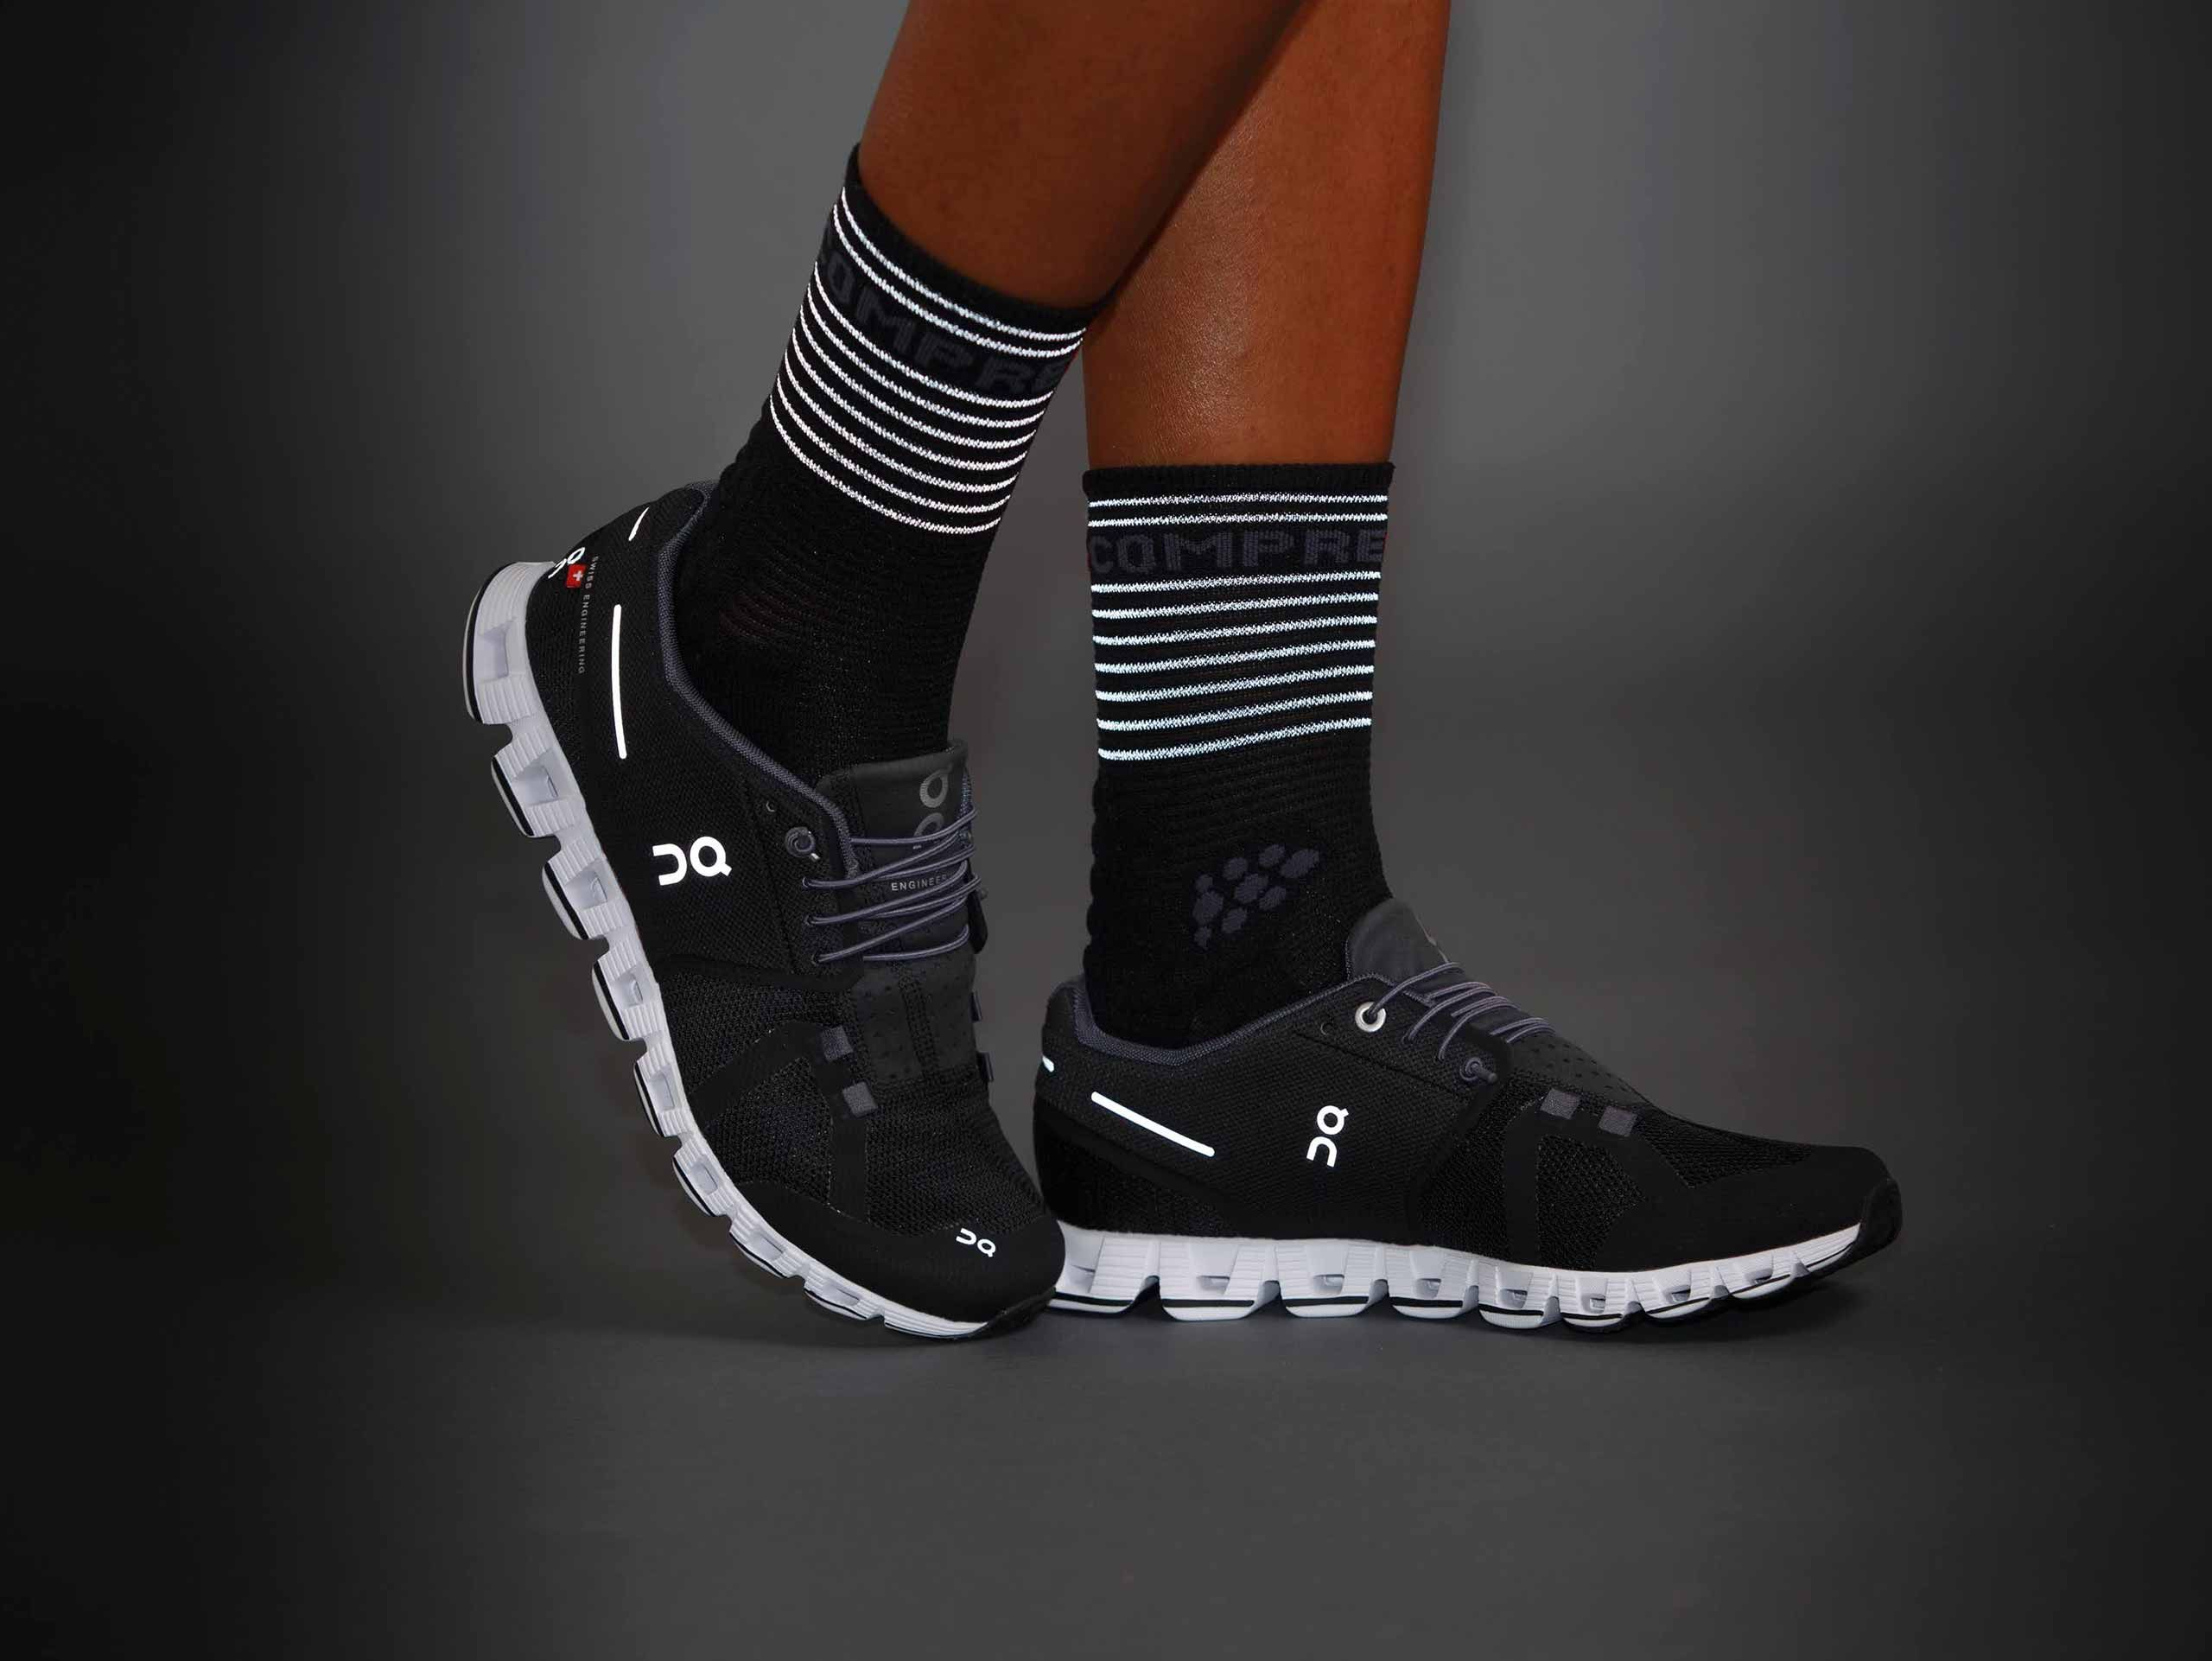 Pro Racing Socks Flash BLACK